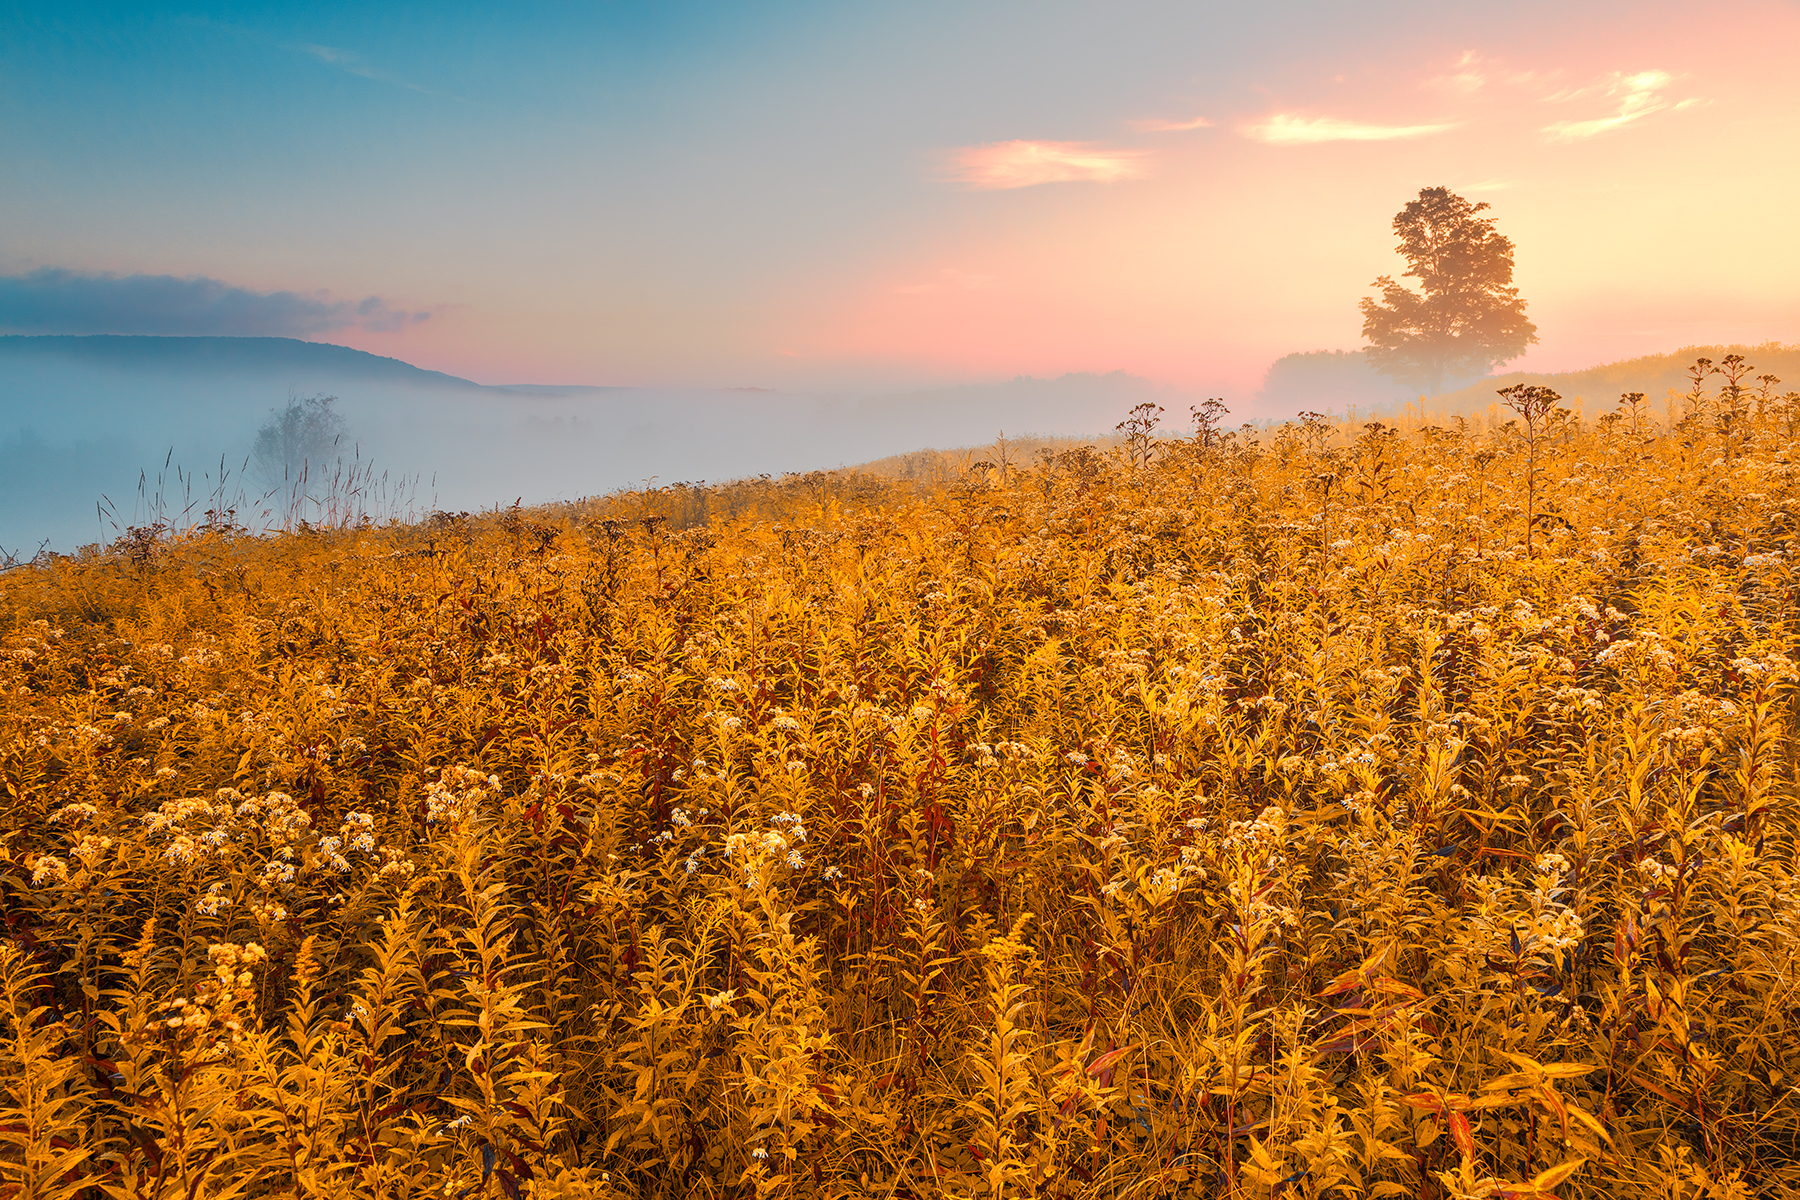 Misty Canaan Valley Sunrise - Gold Pastel Fantasy HDR, Abstract, Peaceful, Serene, Scenic, HQ Photo